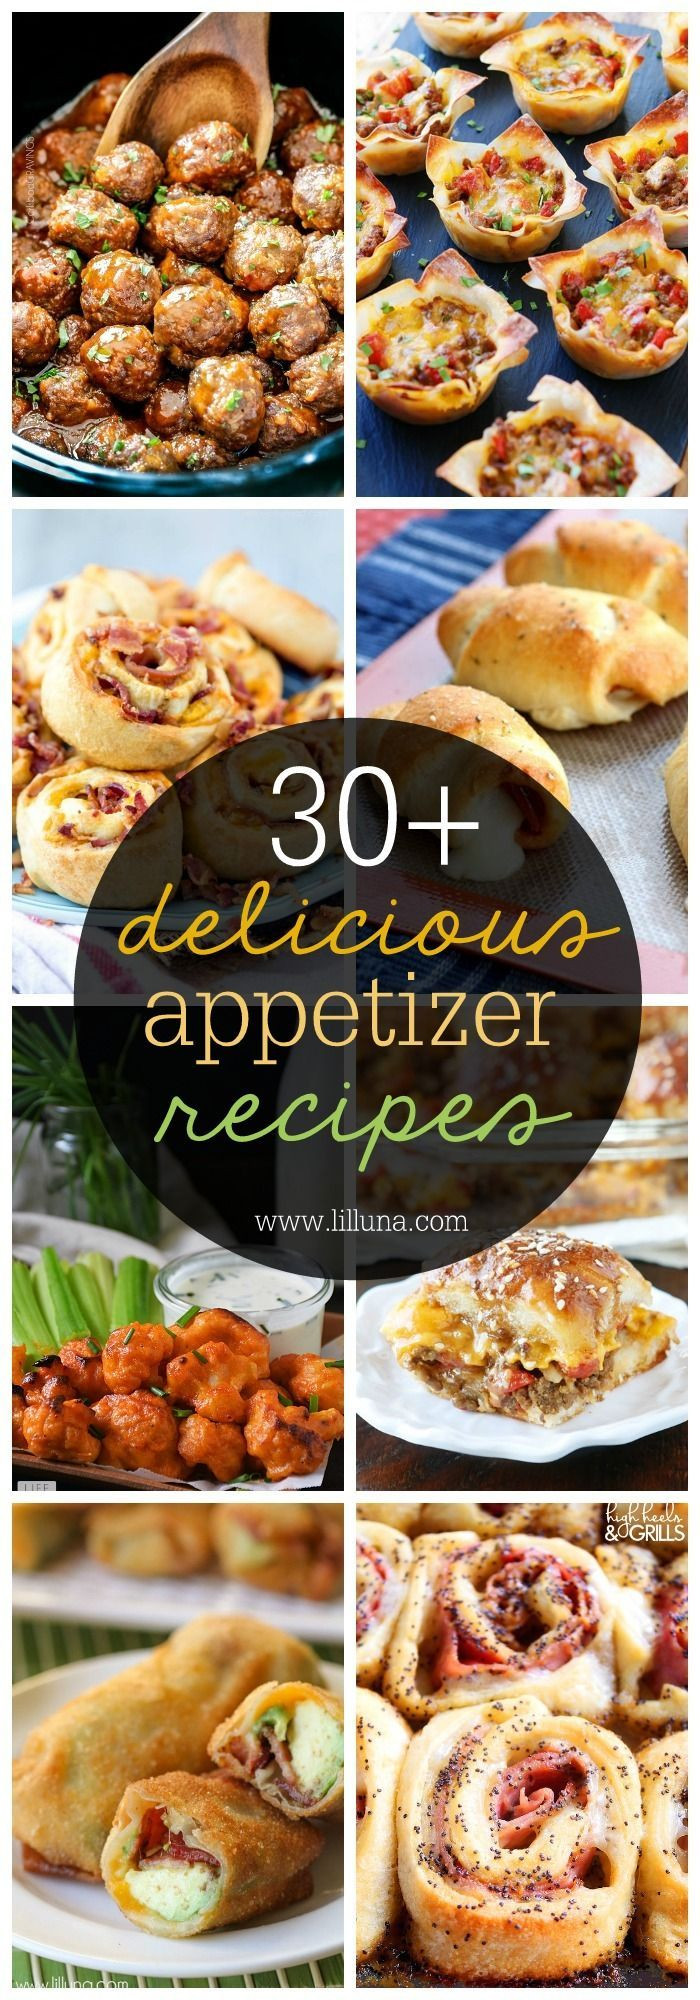 Great Appetizers For Christmas Party  30 Appetizer Recipes a great collection for parties